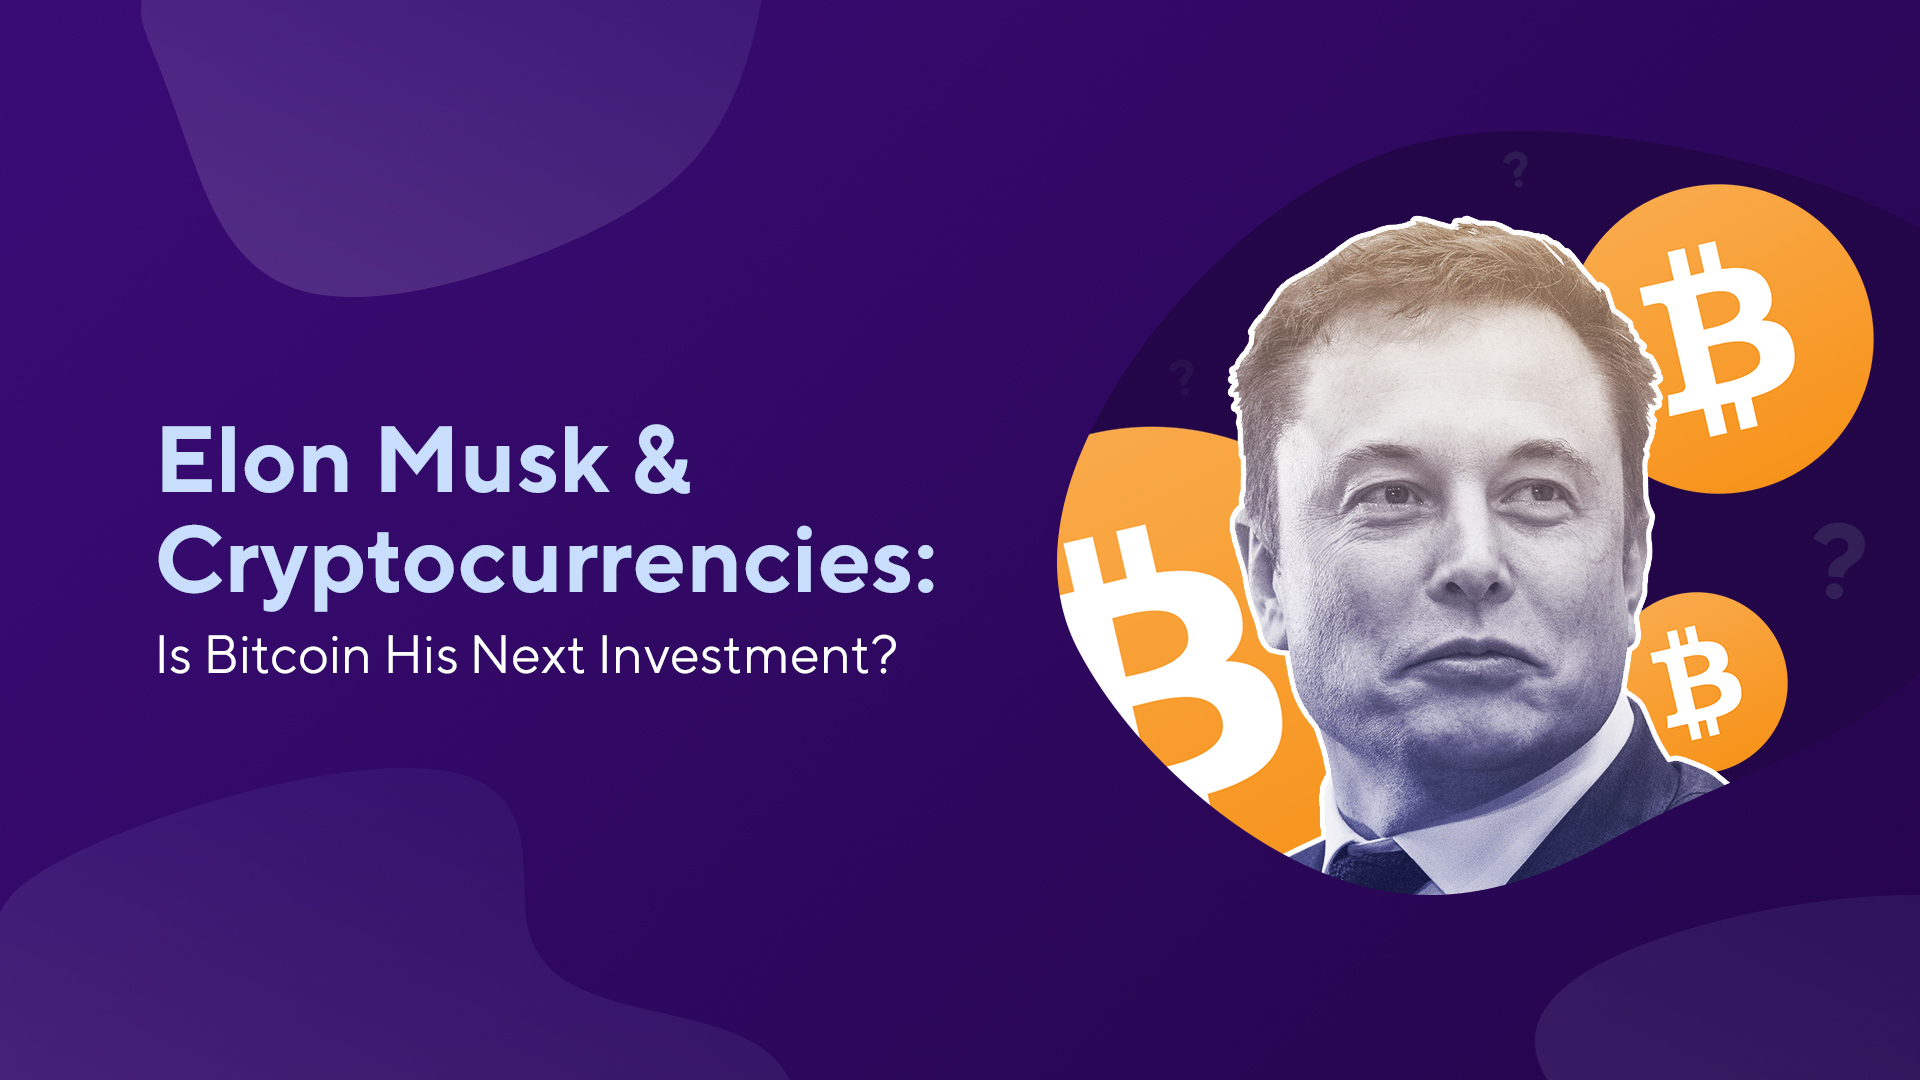 Elon Musk & Cryptocurrencies: Is Bitcoin His Next Investment?